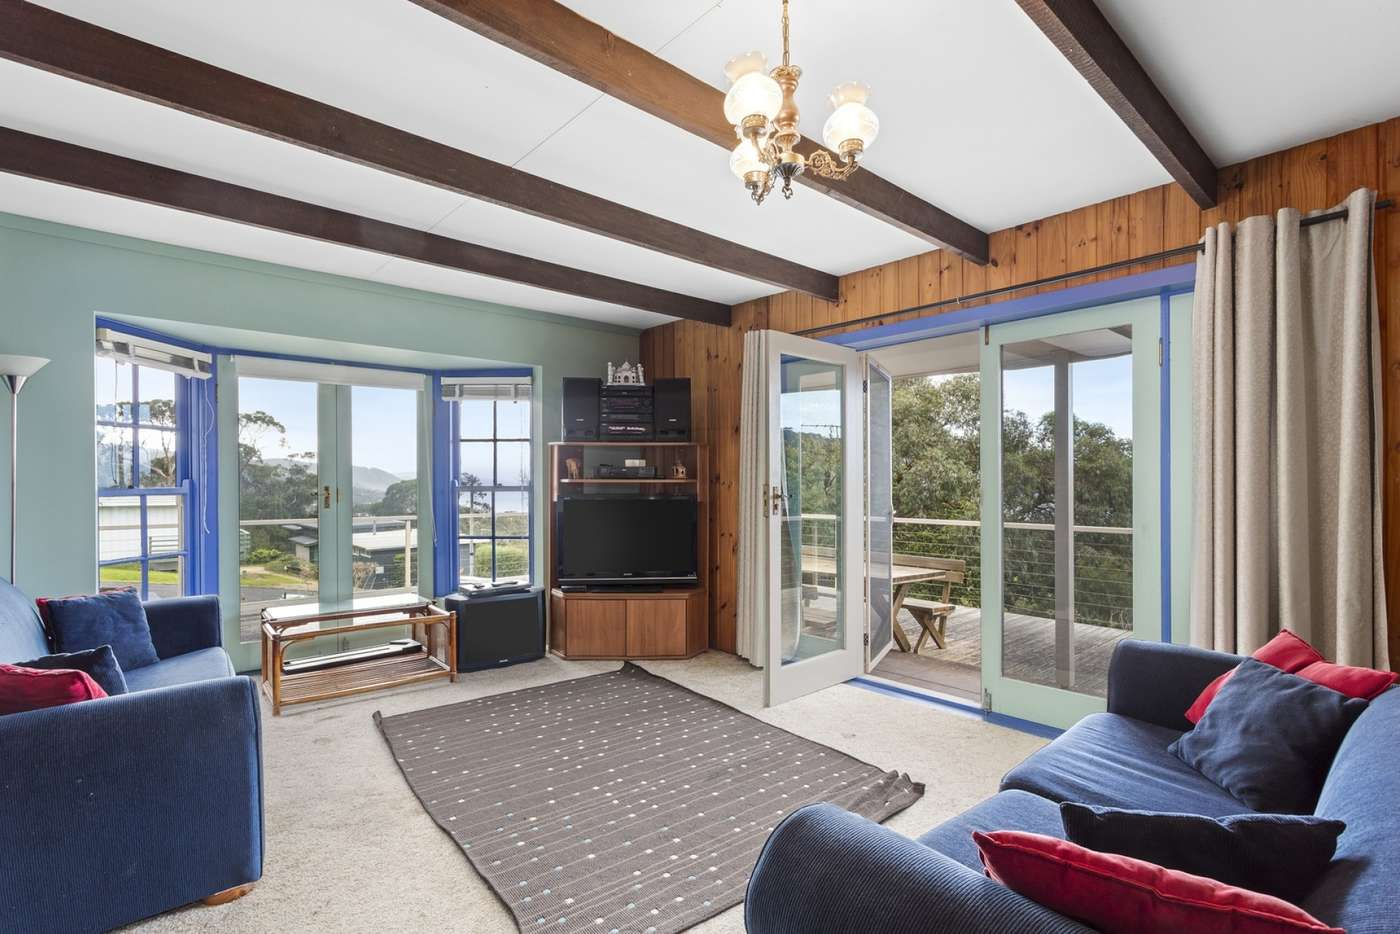 Fifth view of Homely house listing, 4 Anderson Court, Lorne VIC 3232